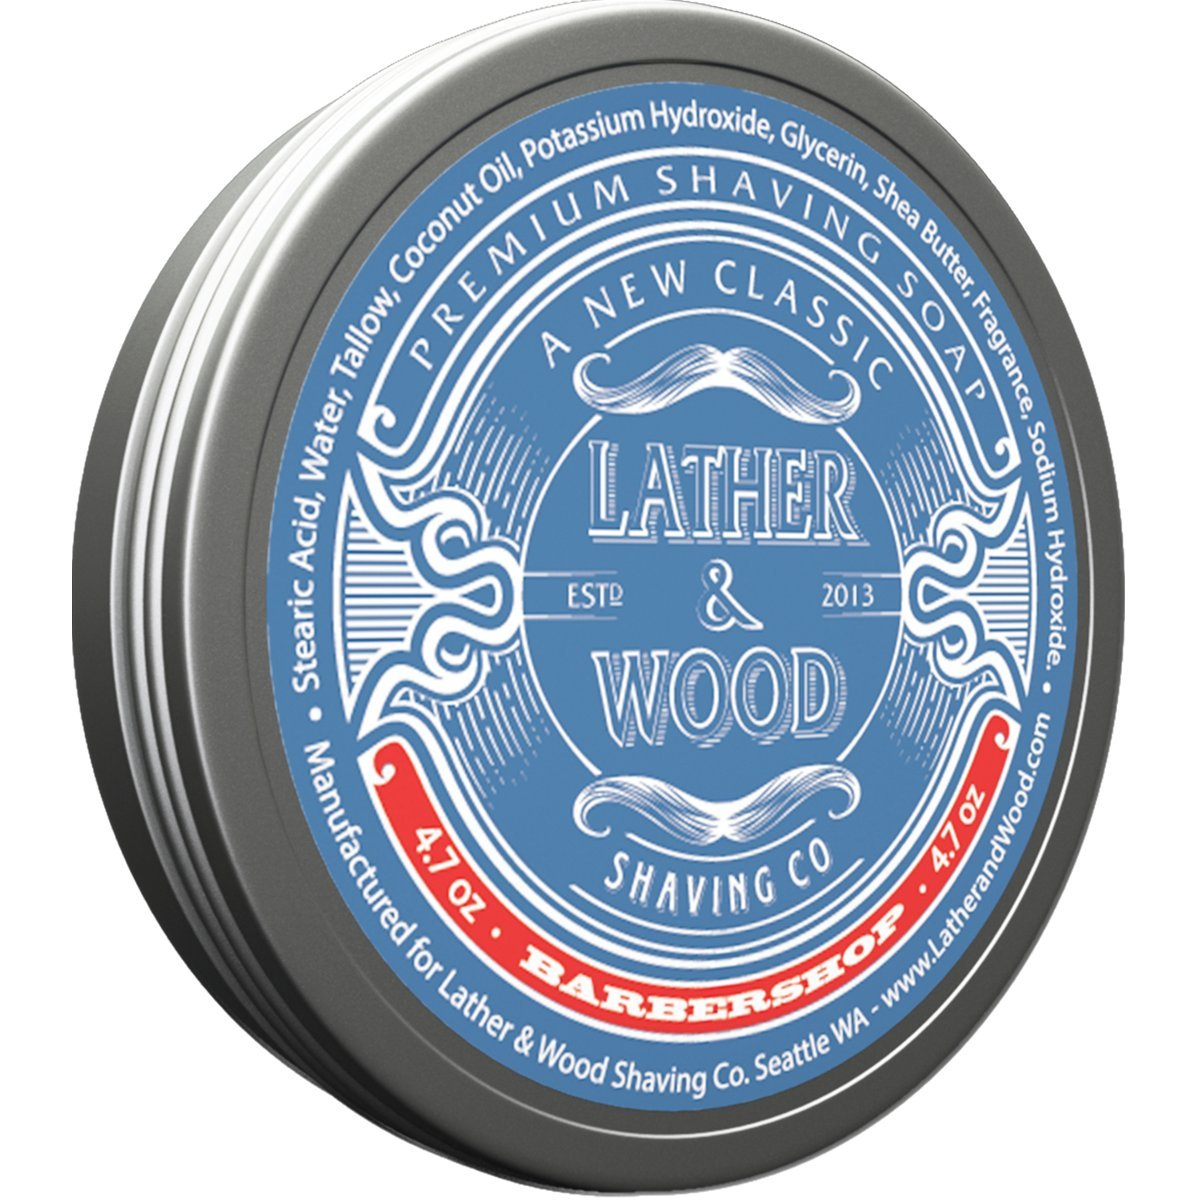 Lather & Wood Shaving Soap - Sandalwood - Simply the Best Luxury Shaving Cream - Tallow - Dense Lather with Fantastic Scent for the Worlds Best Wet Shaving Routine. 4.6 oz (Sandelwood) Lather & Wood Shaving Co.